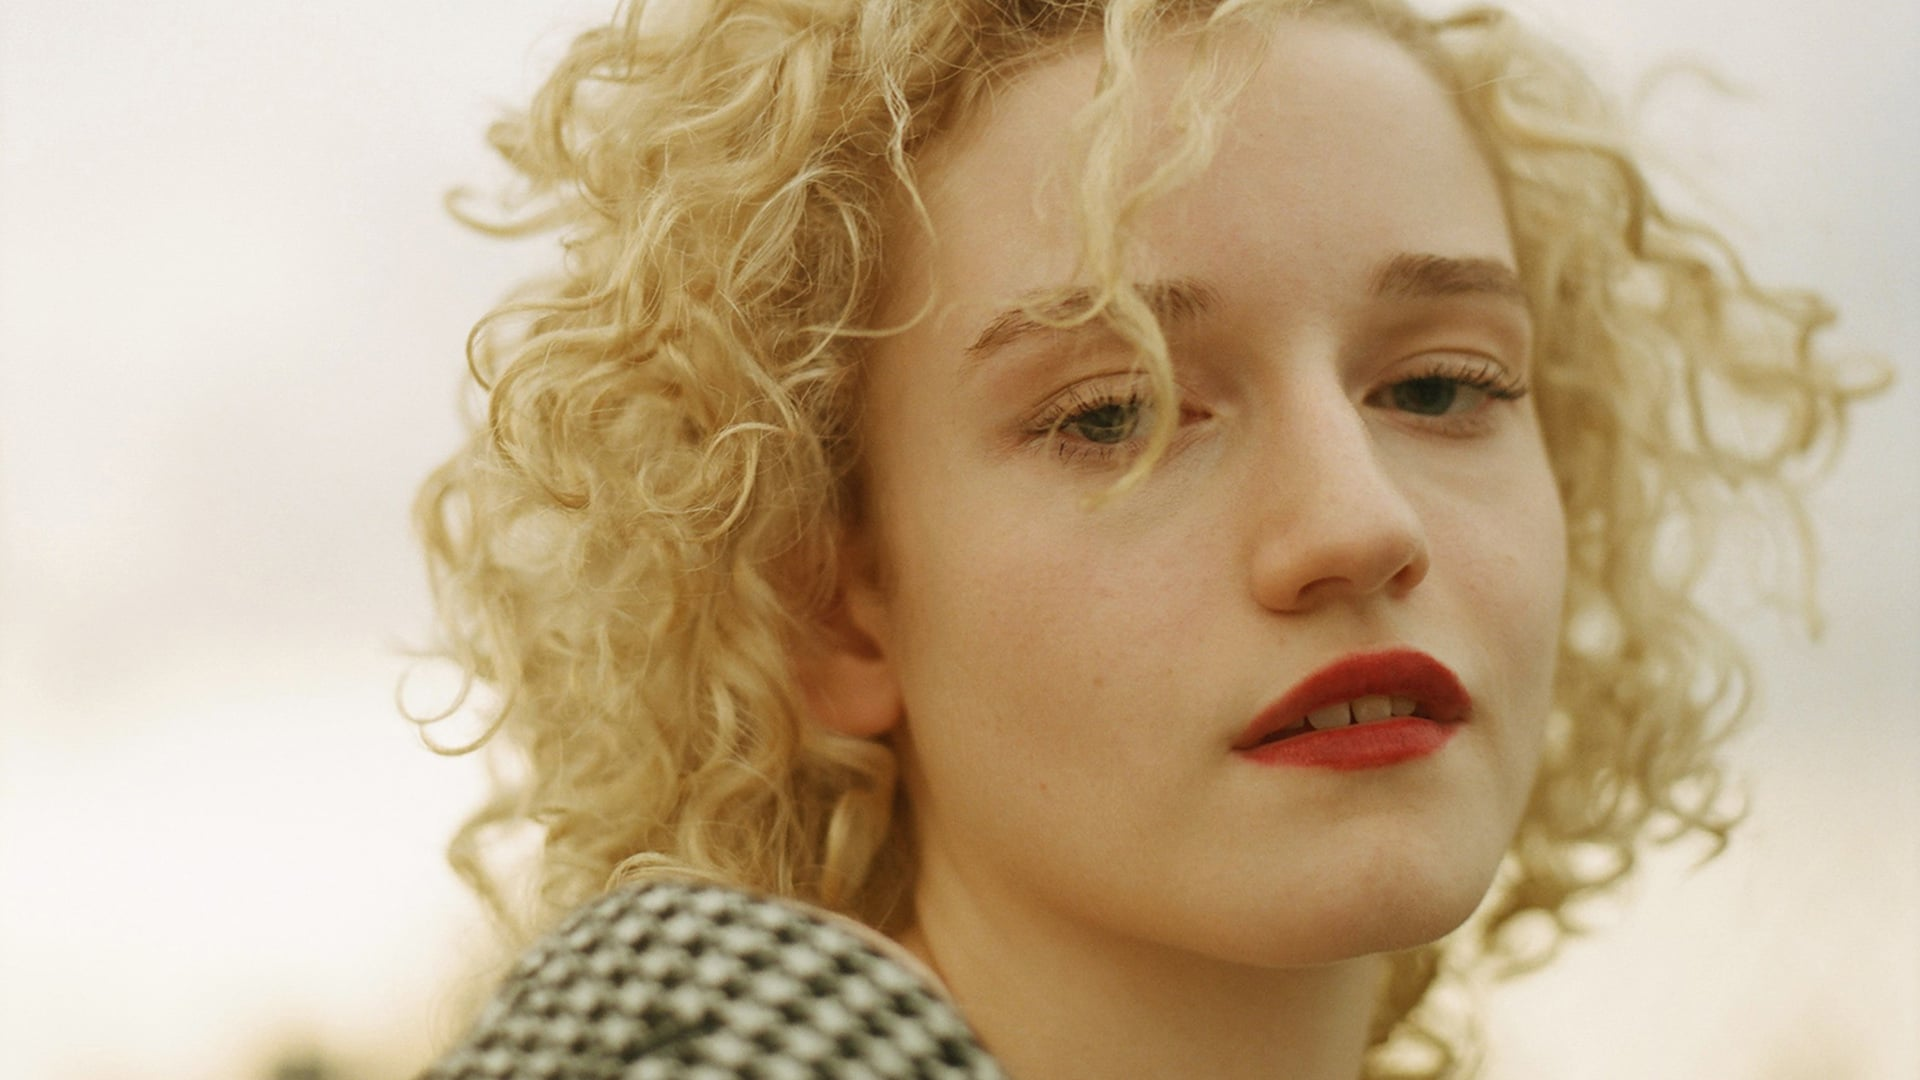 Julia Garner computer wallpaper